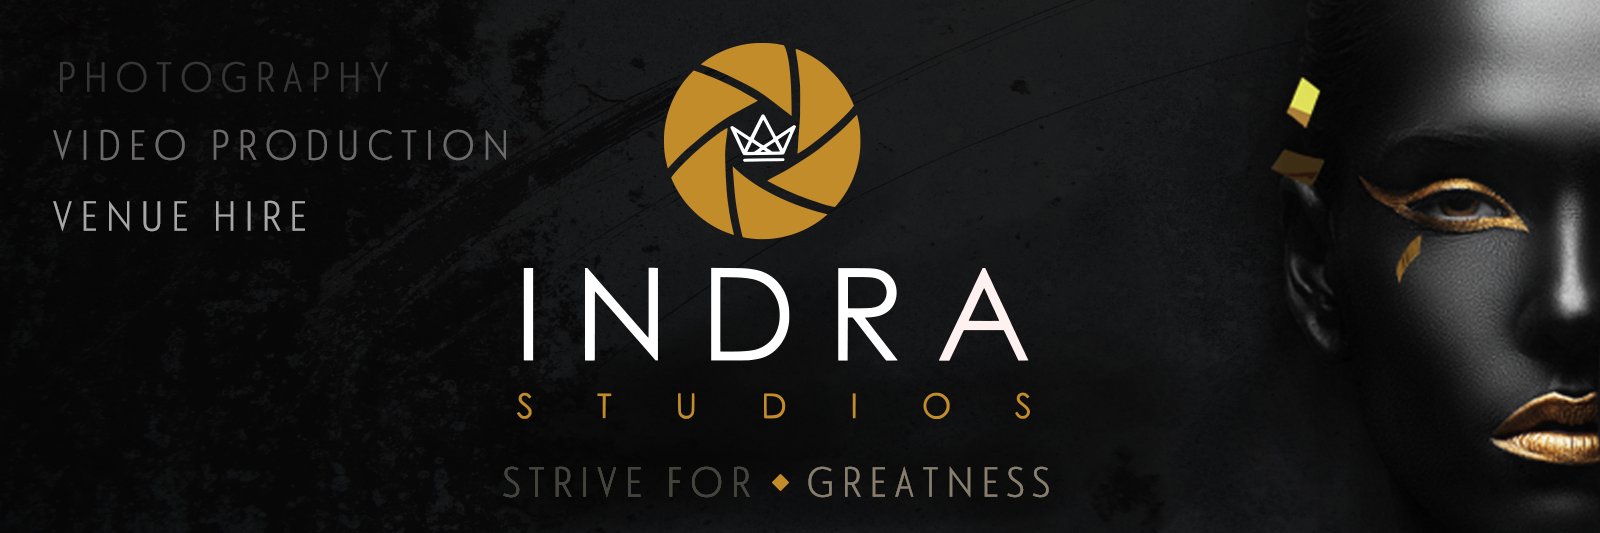 About Indra Studios